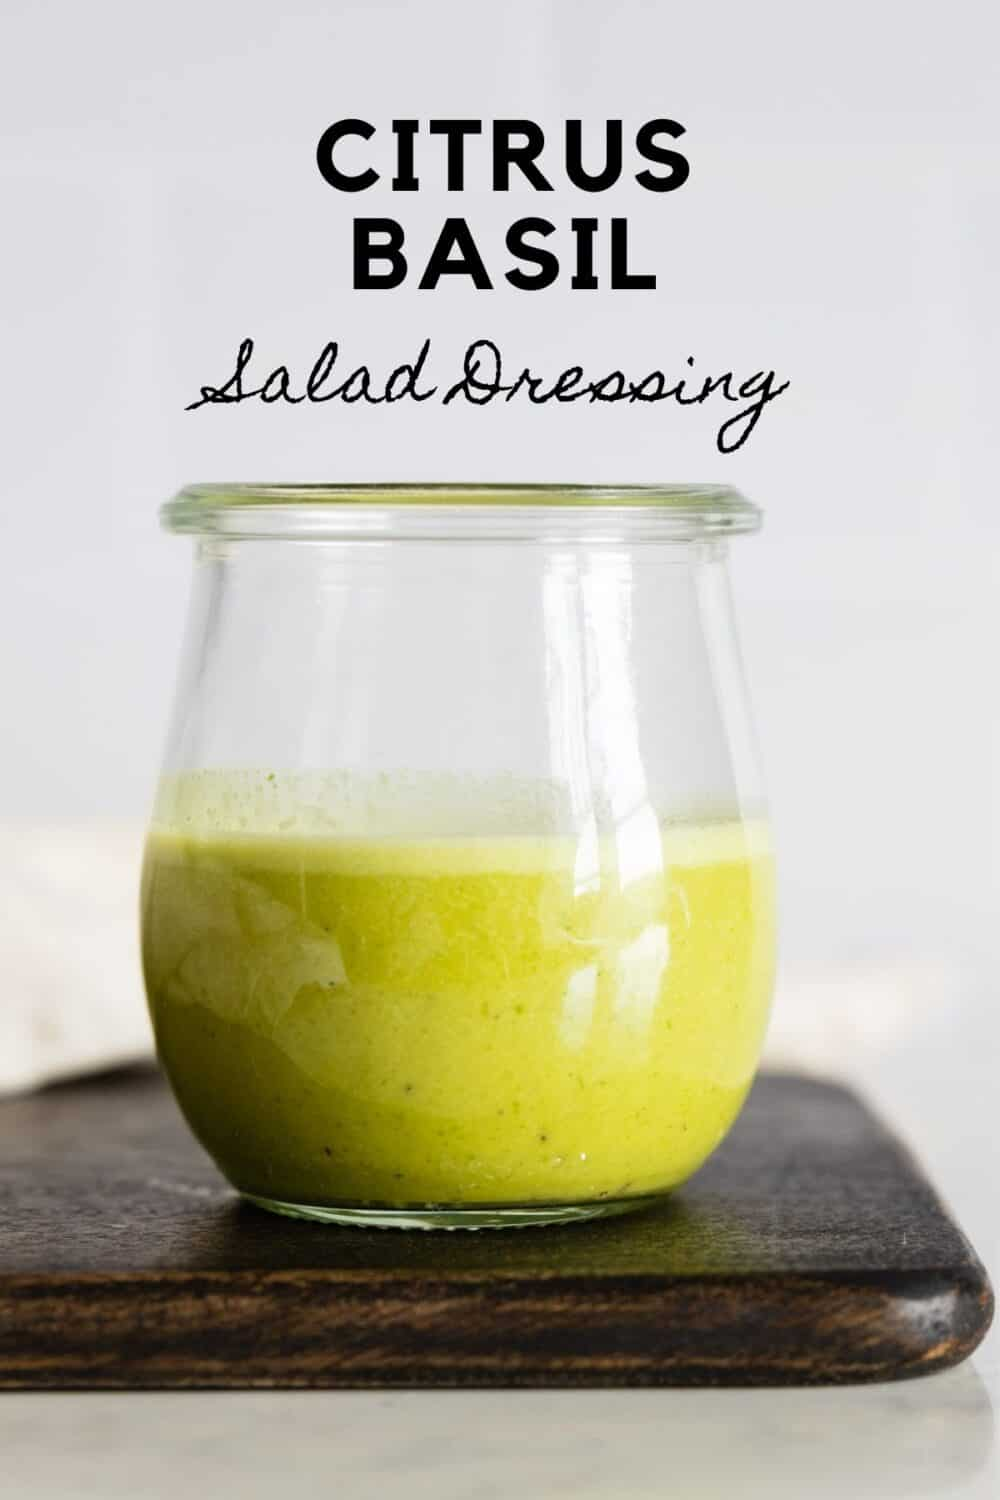 Glass jar with green salad dressing with title reading: Citrus Basil Salad Dressing.